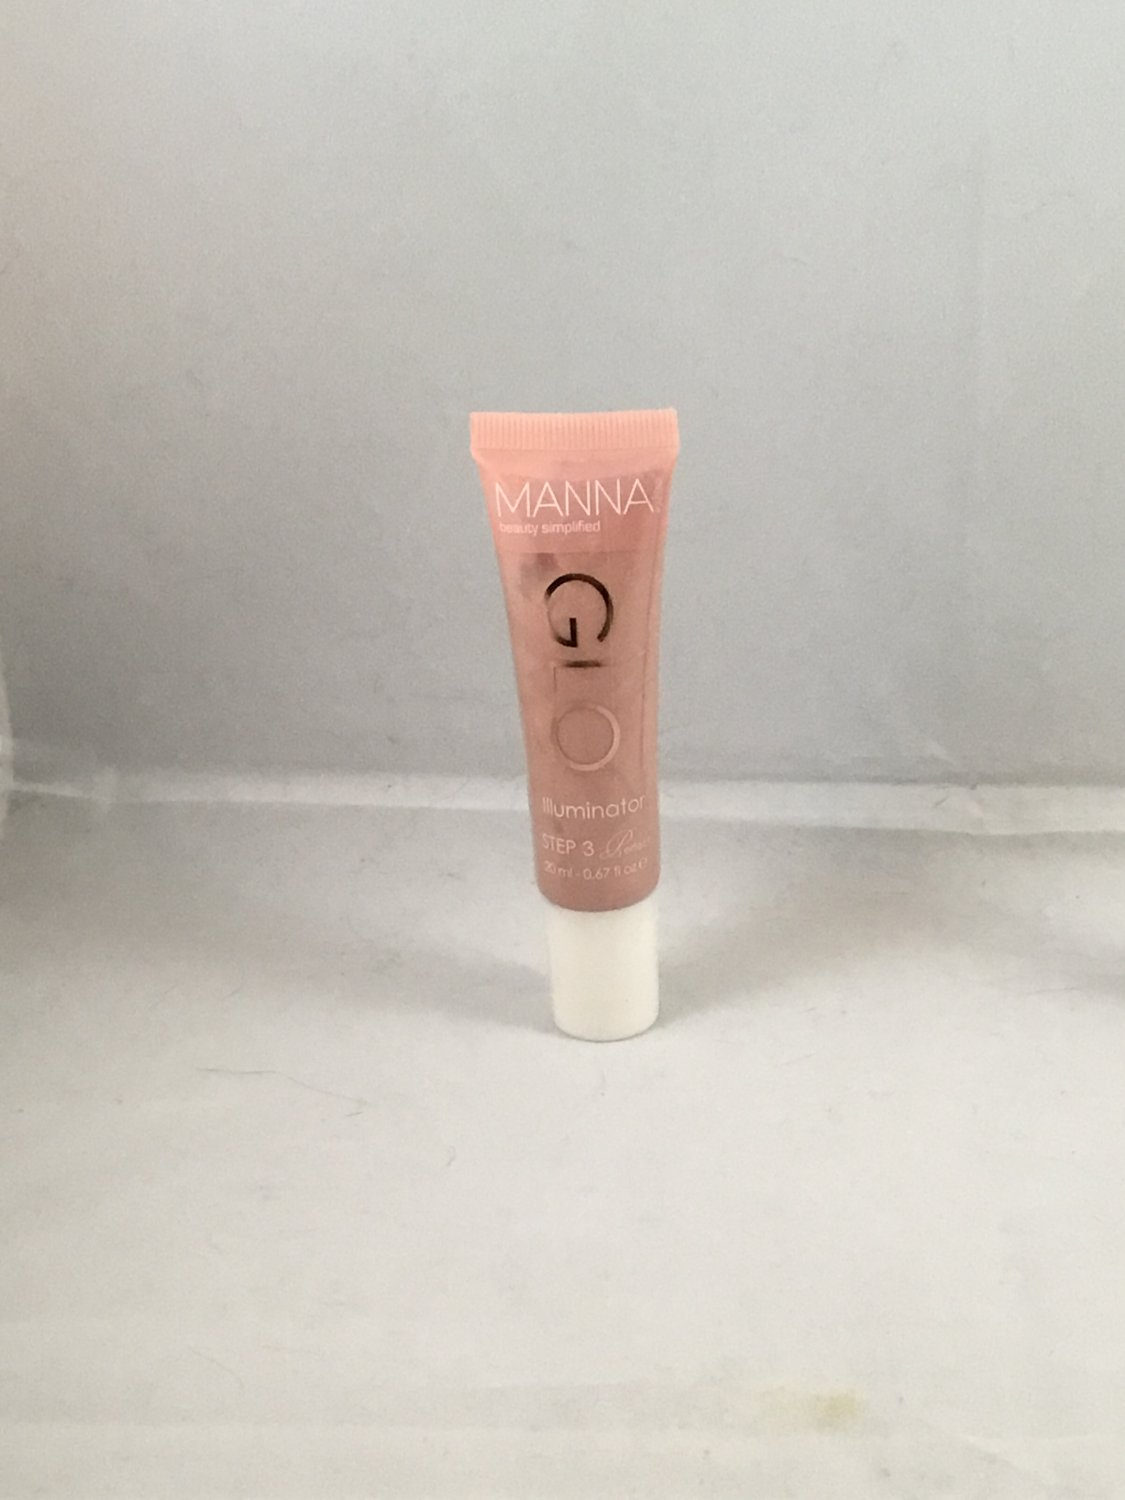 Manna Kadar Glo Illuminator Liquid Highlighter